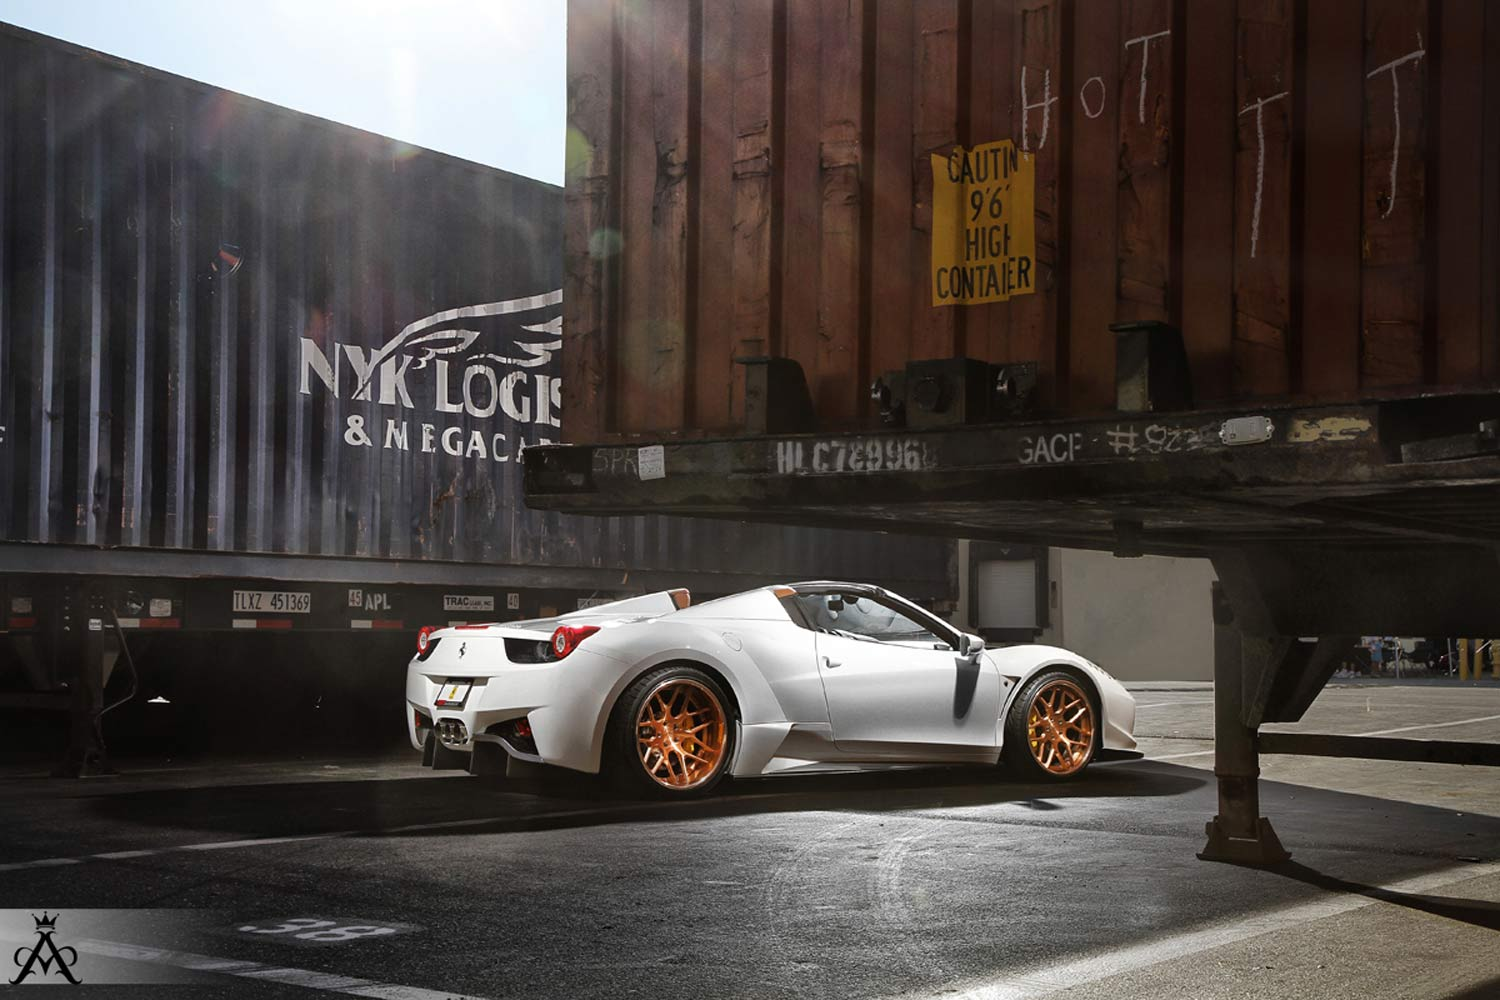 vad design premier forged alloy wheels and aero styling ferrari 458 spider wide body fitted with aristo sport 14 rose gold - Ferrari 458 Gold Wheels